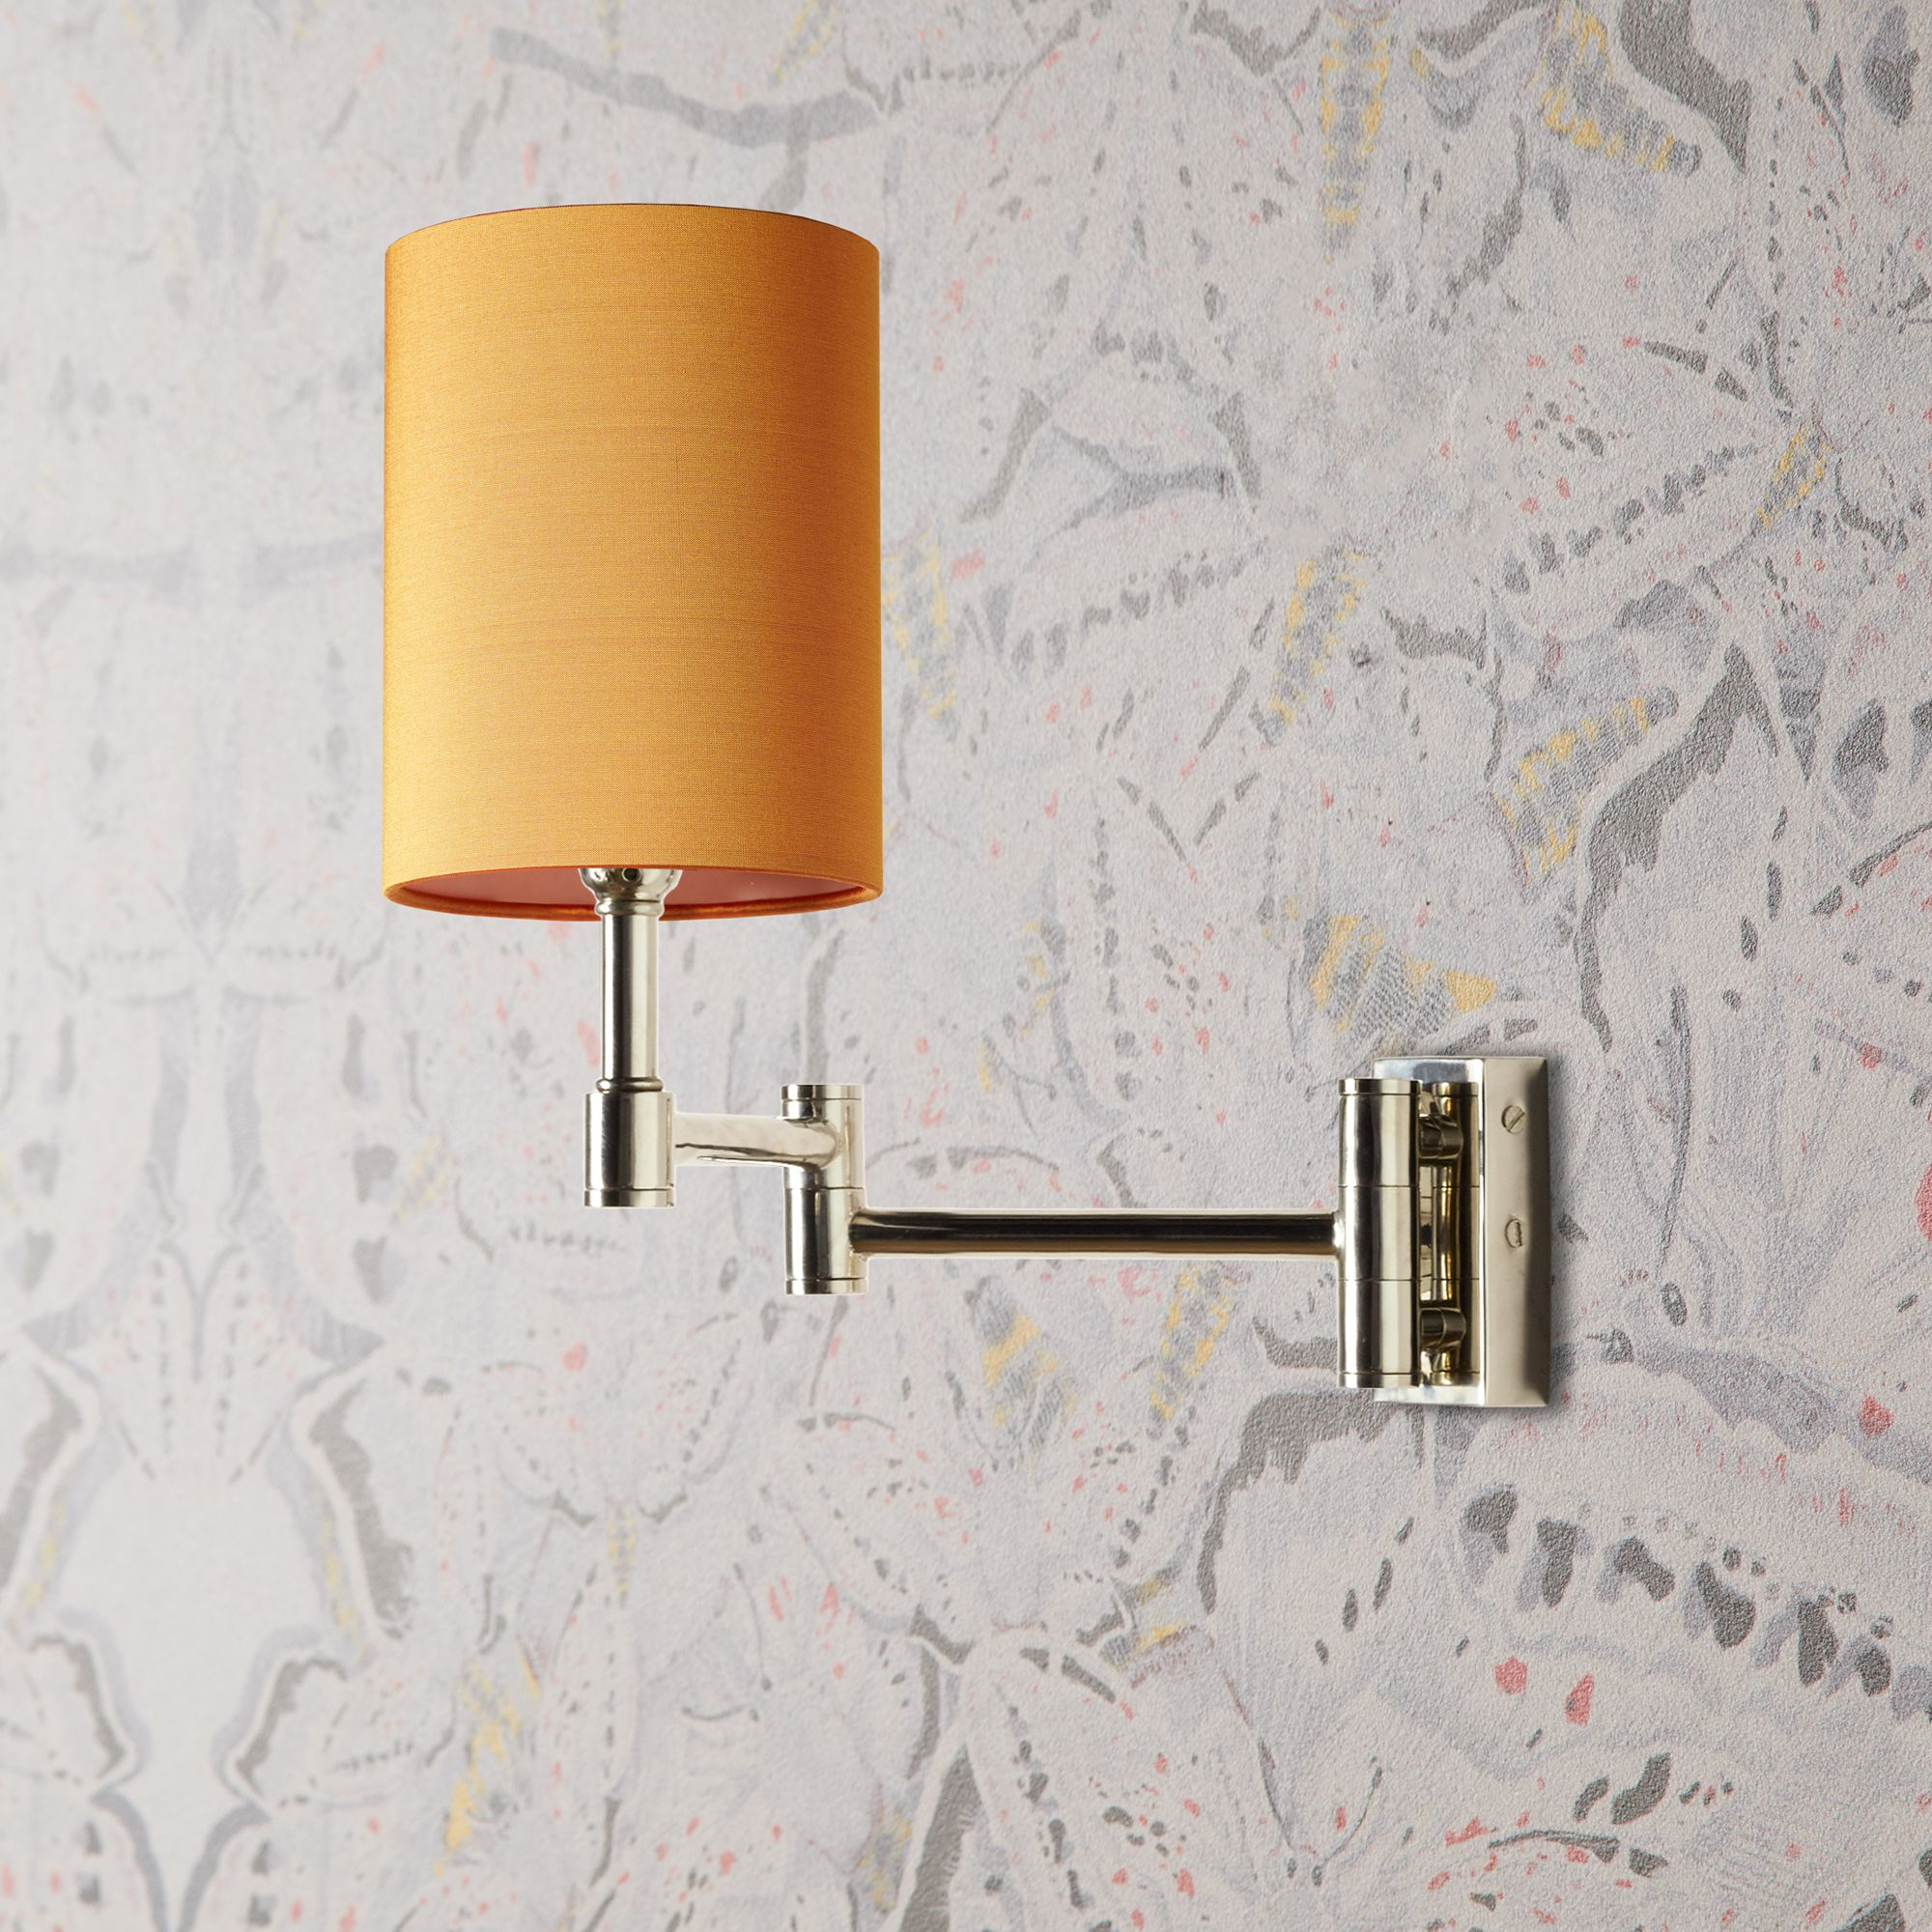 Cagney Wall Fitting In A Chrome Finish With 11cm Drum Shade In Saffron Dupion Silk In 2020 Wall Light Fittings Wall Lights Pooky Lighting